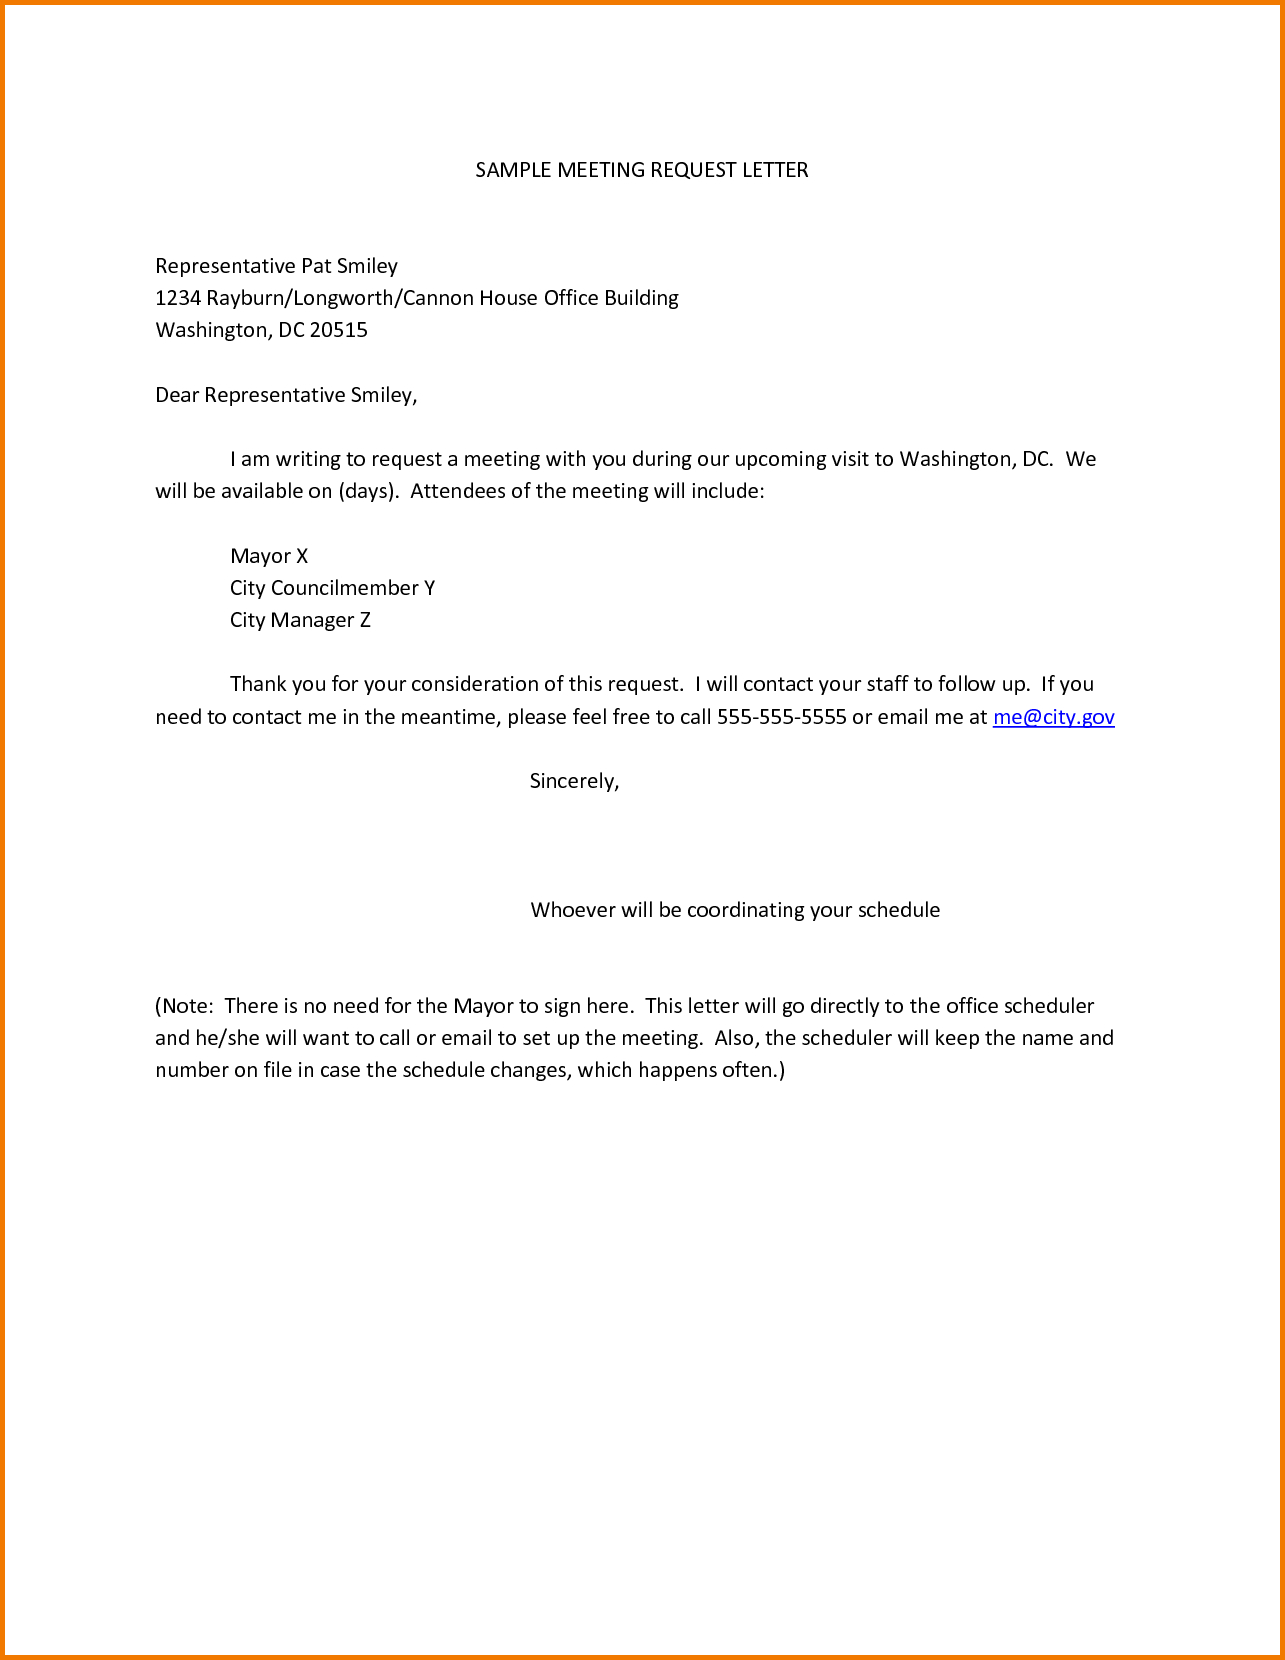 Formal Petition Letter Template - Sample Meeting Request Letter Representative Pat Smiley Rayburn